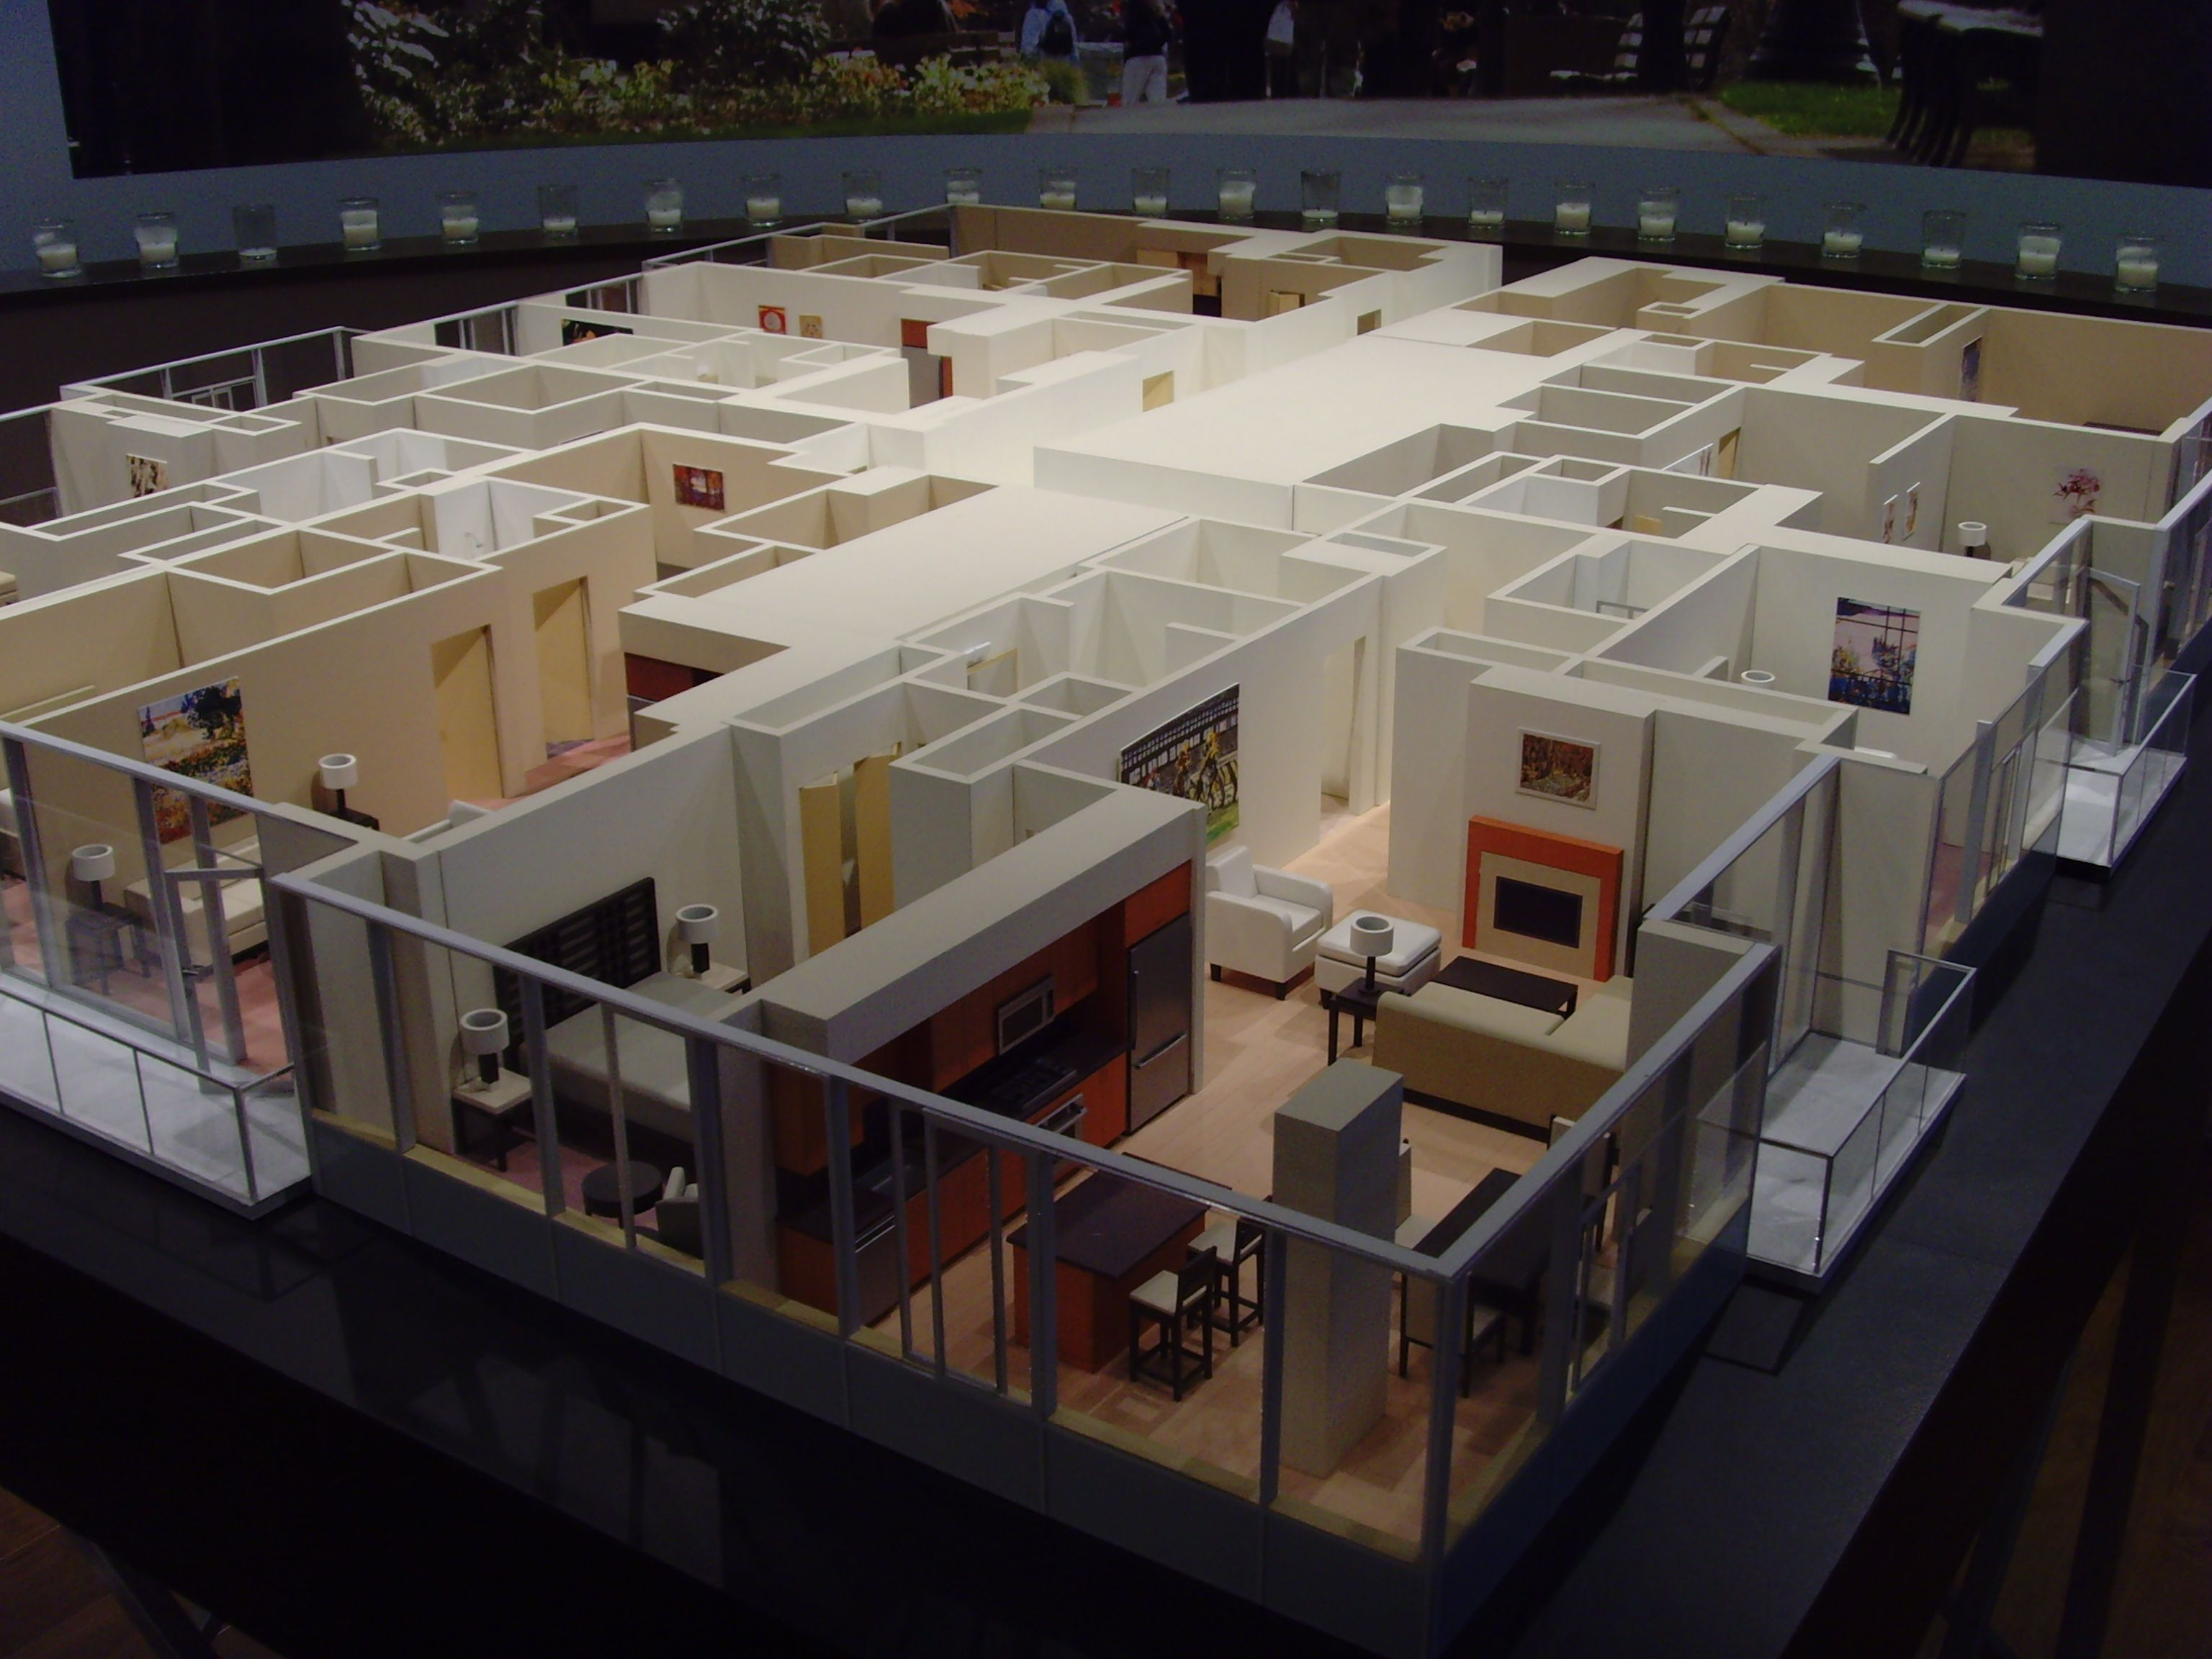 Architectural house models modern house images about rchitectural model making